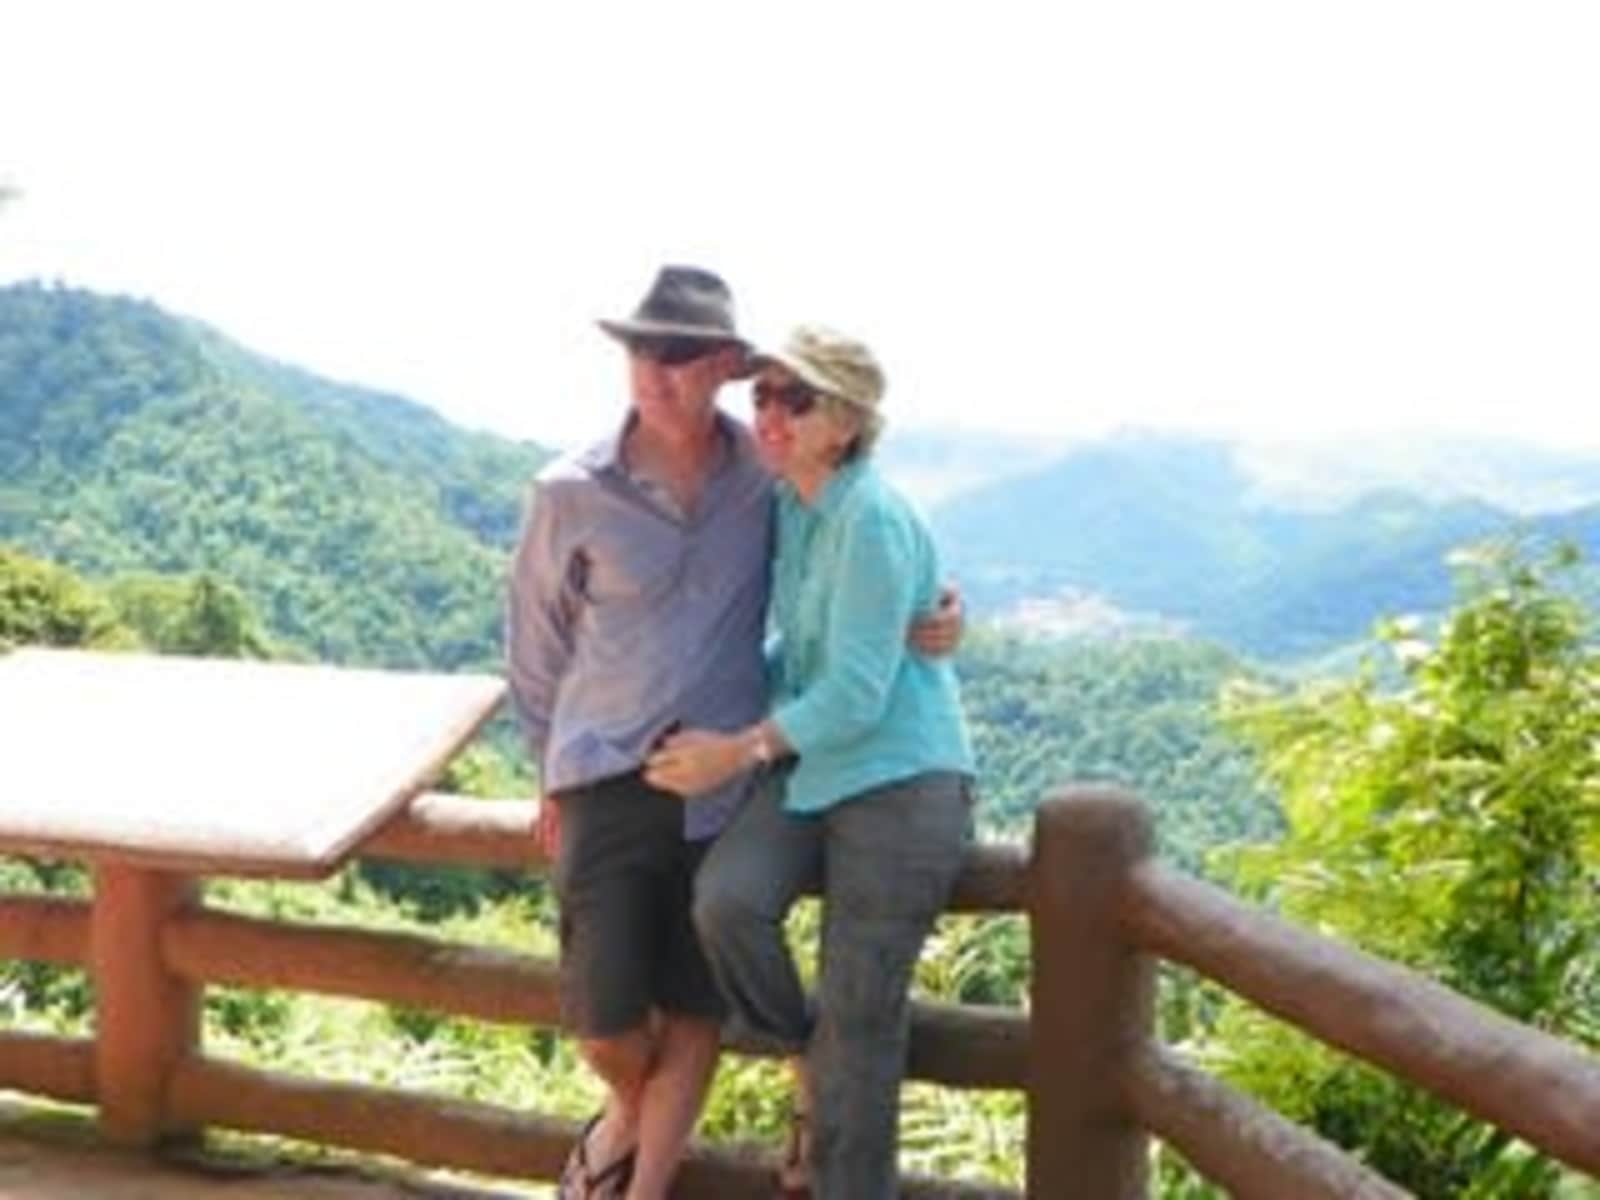 Roger & Alison from Maleny, Queensland, Australia